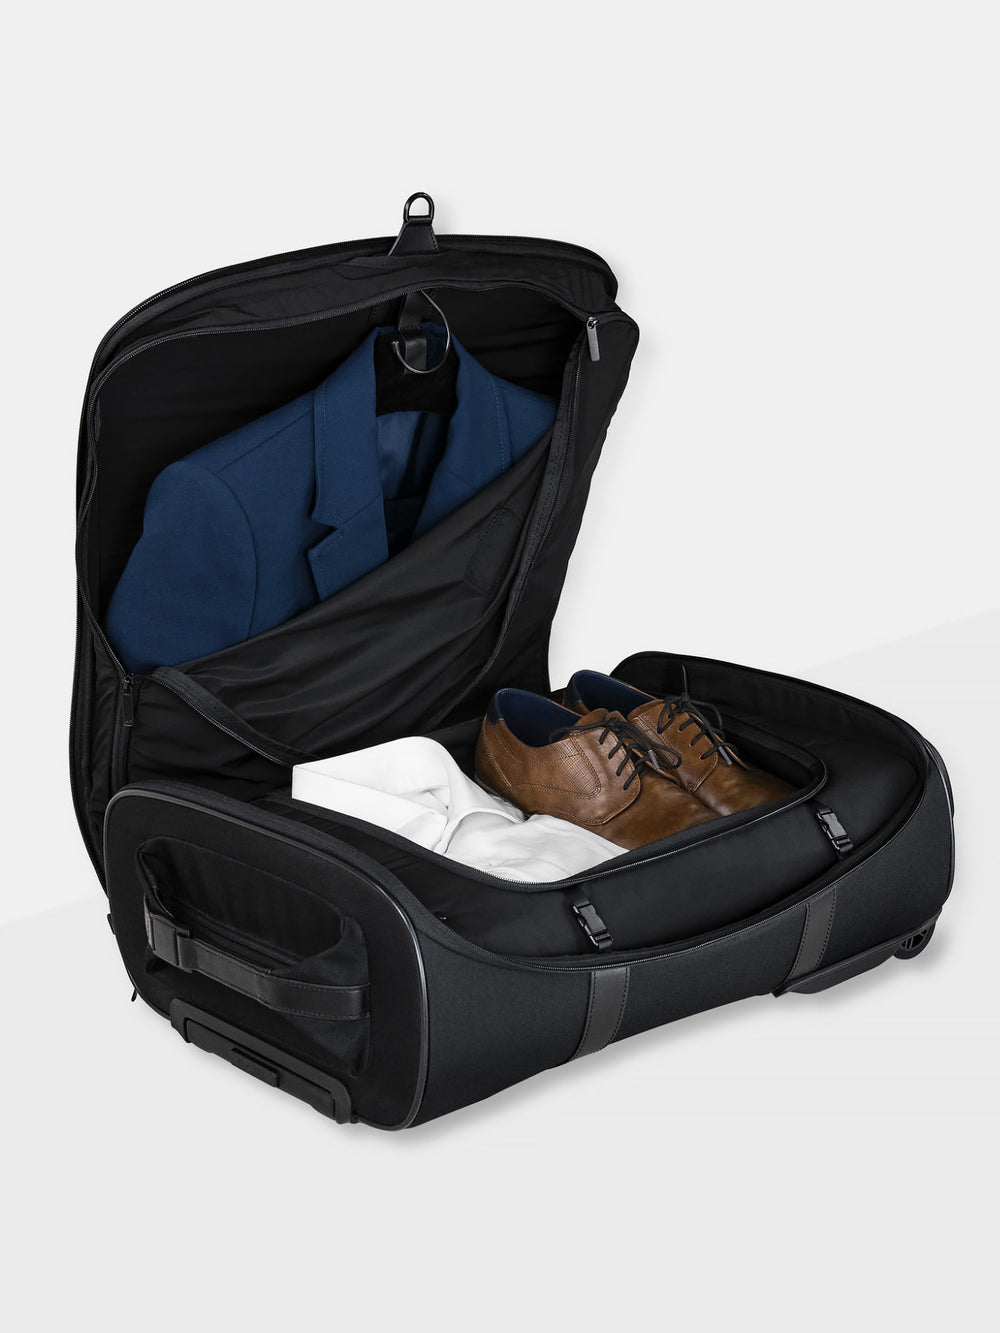 legacy c38 carry on luggage for suits